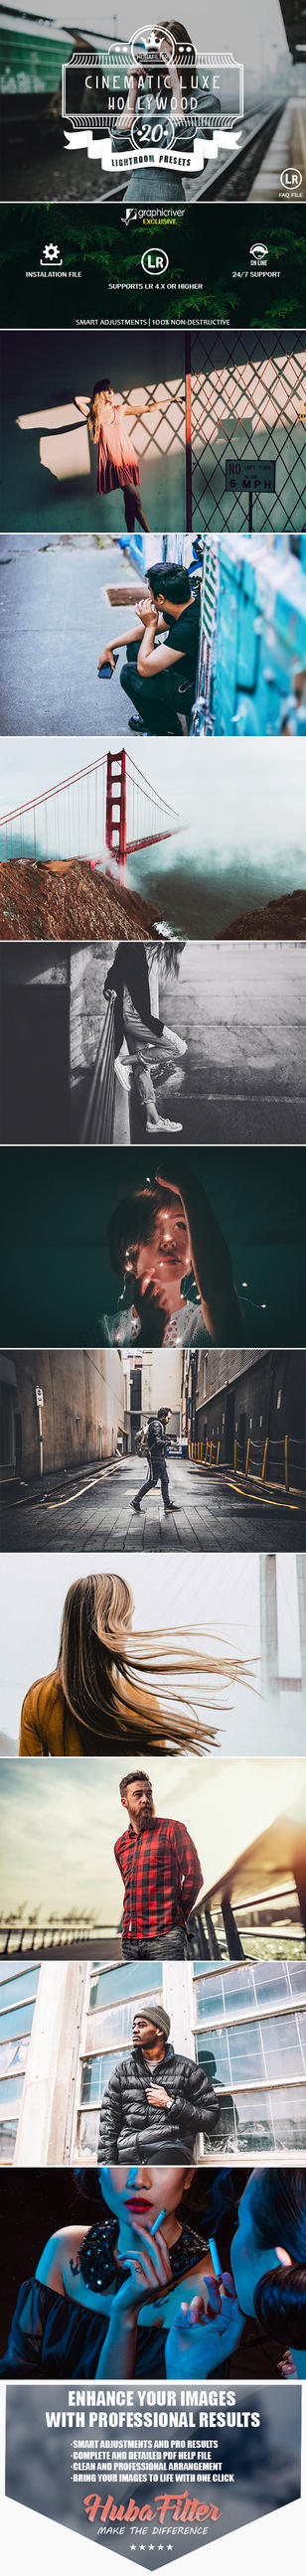 20 Cinematic Luxe Hollywood Lightroom Presets by hubafilter